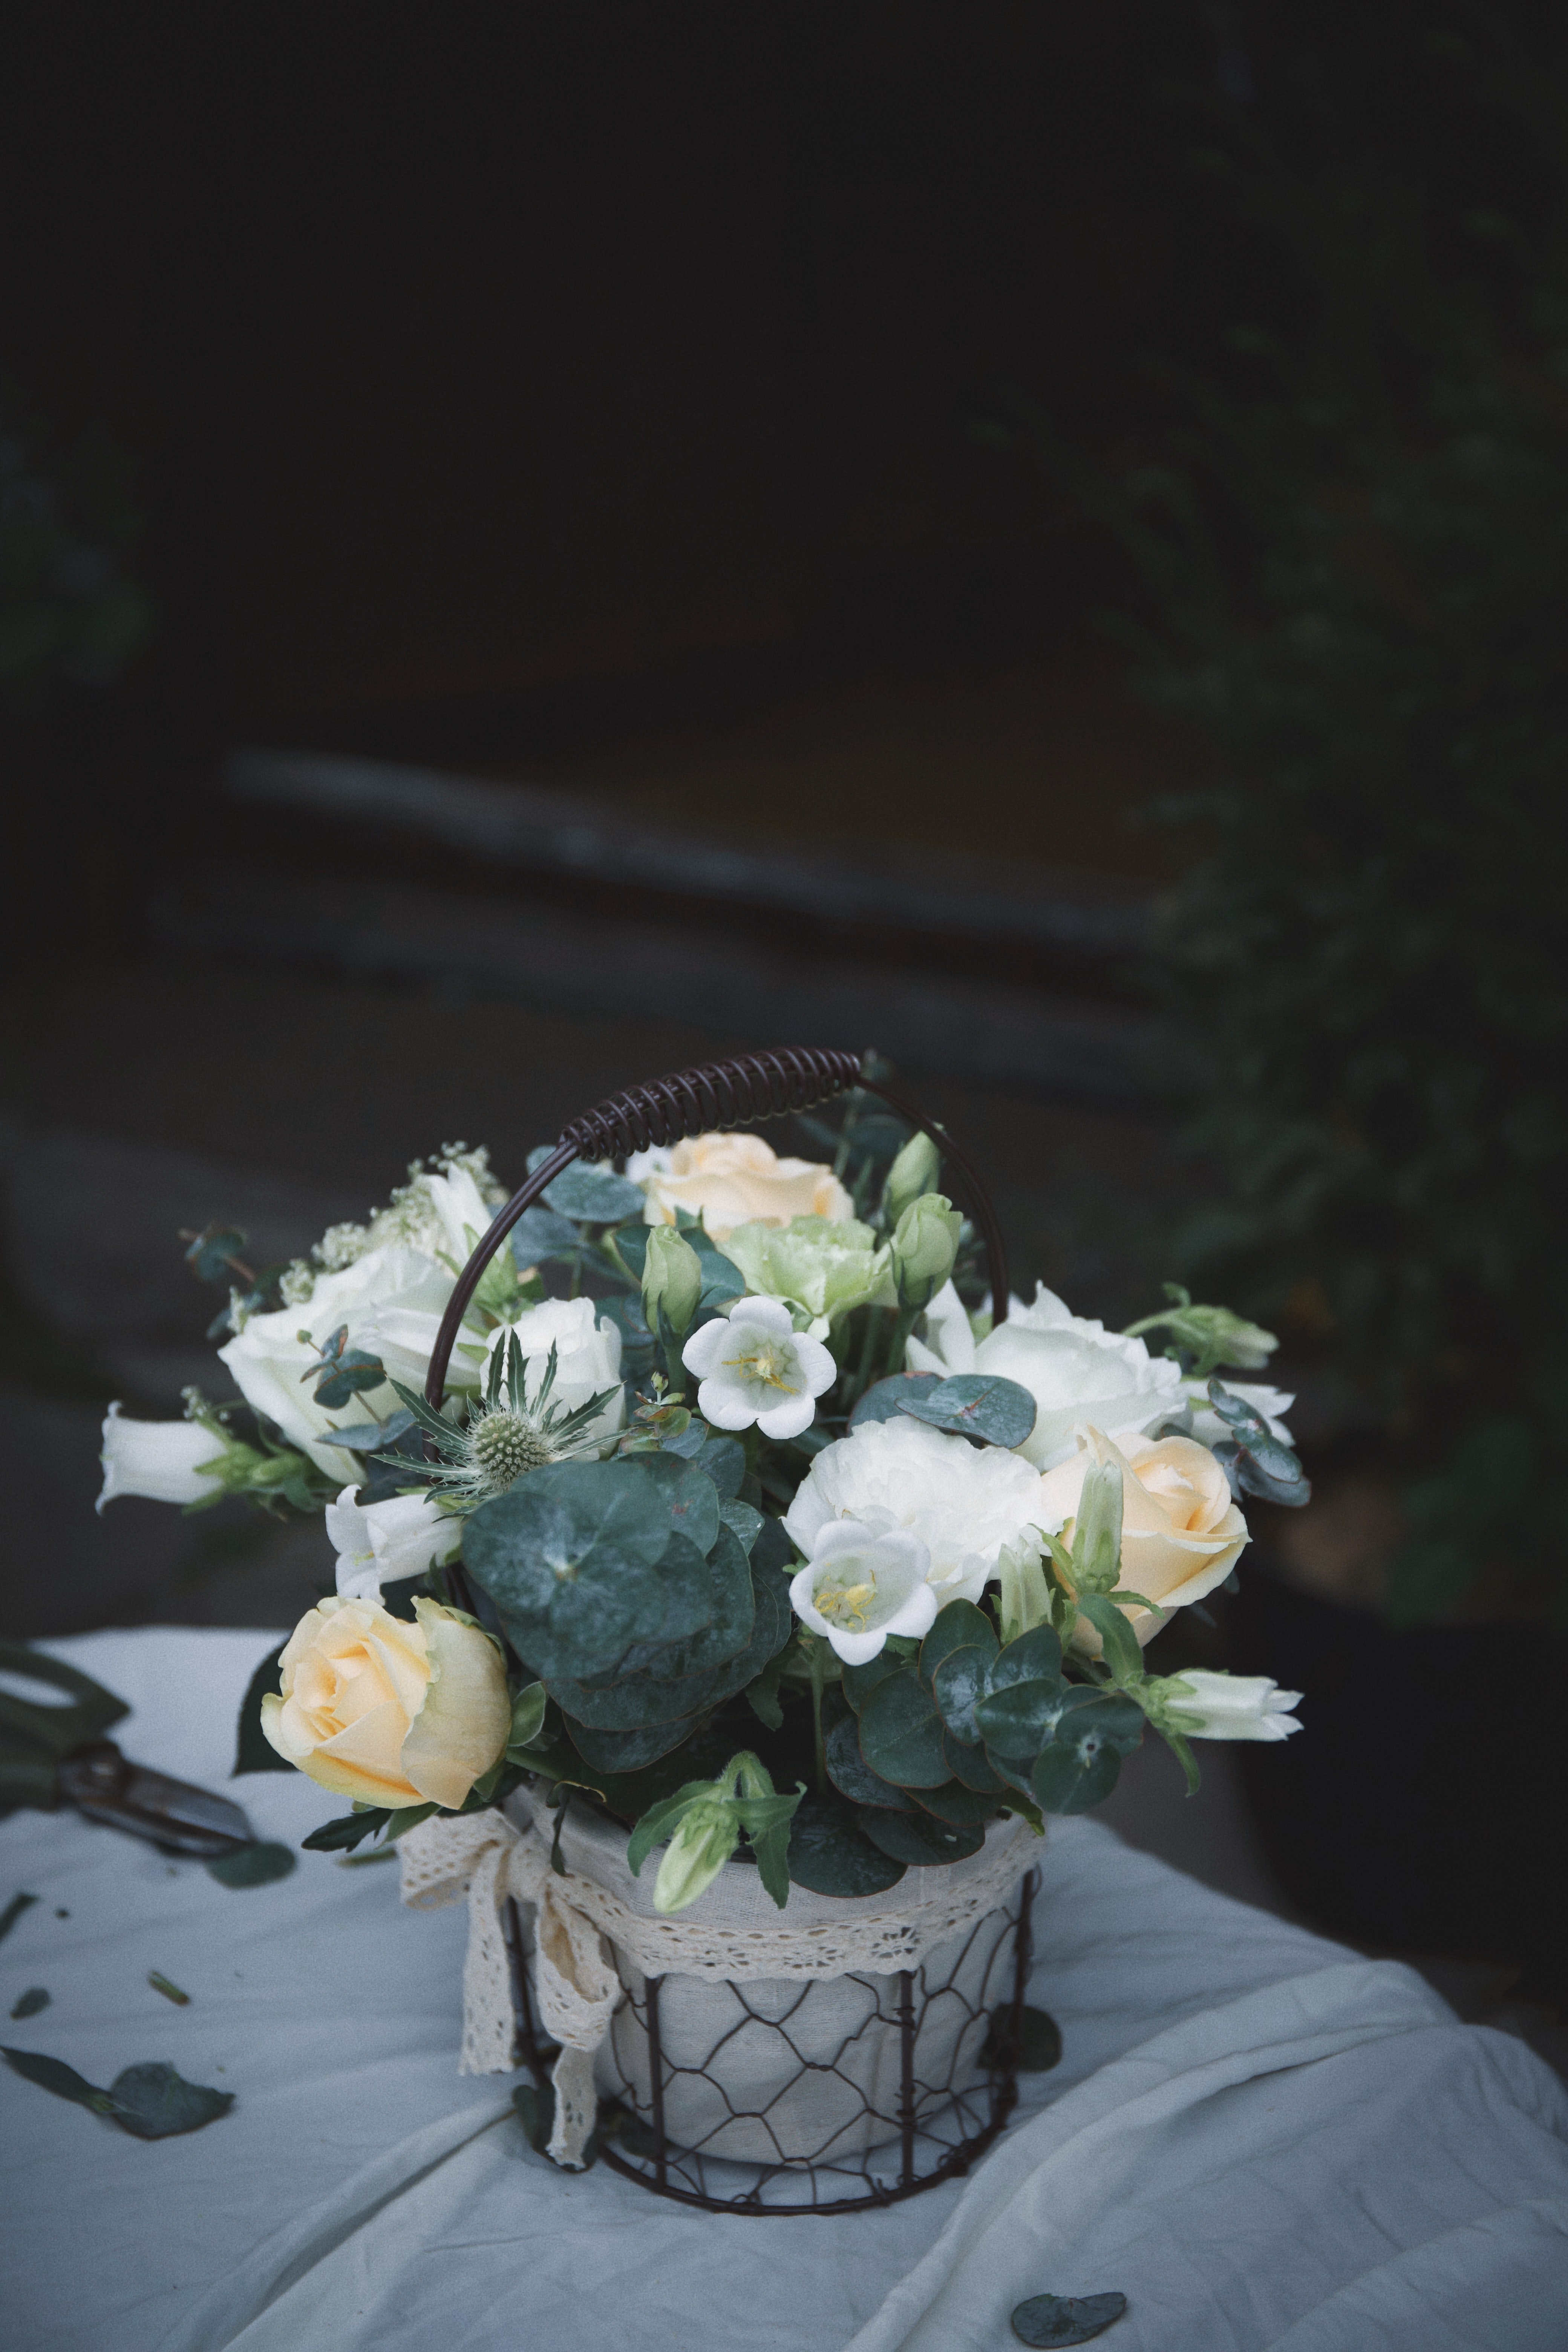 white and beige petaled flower